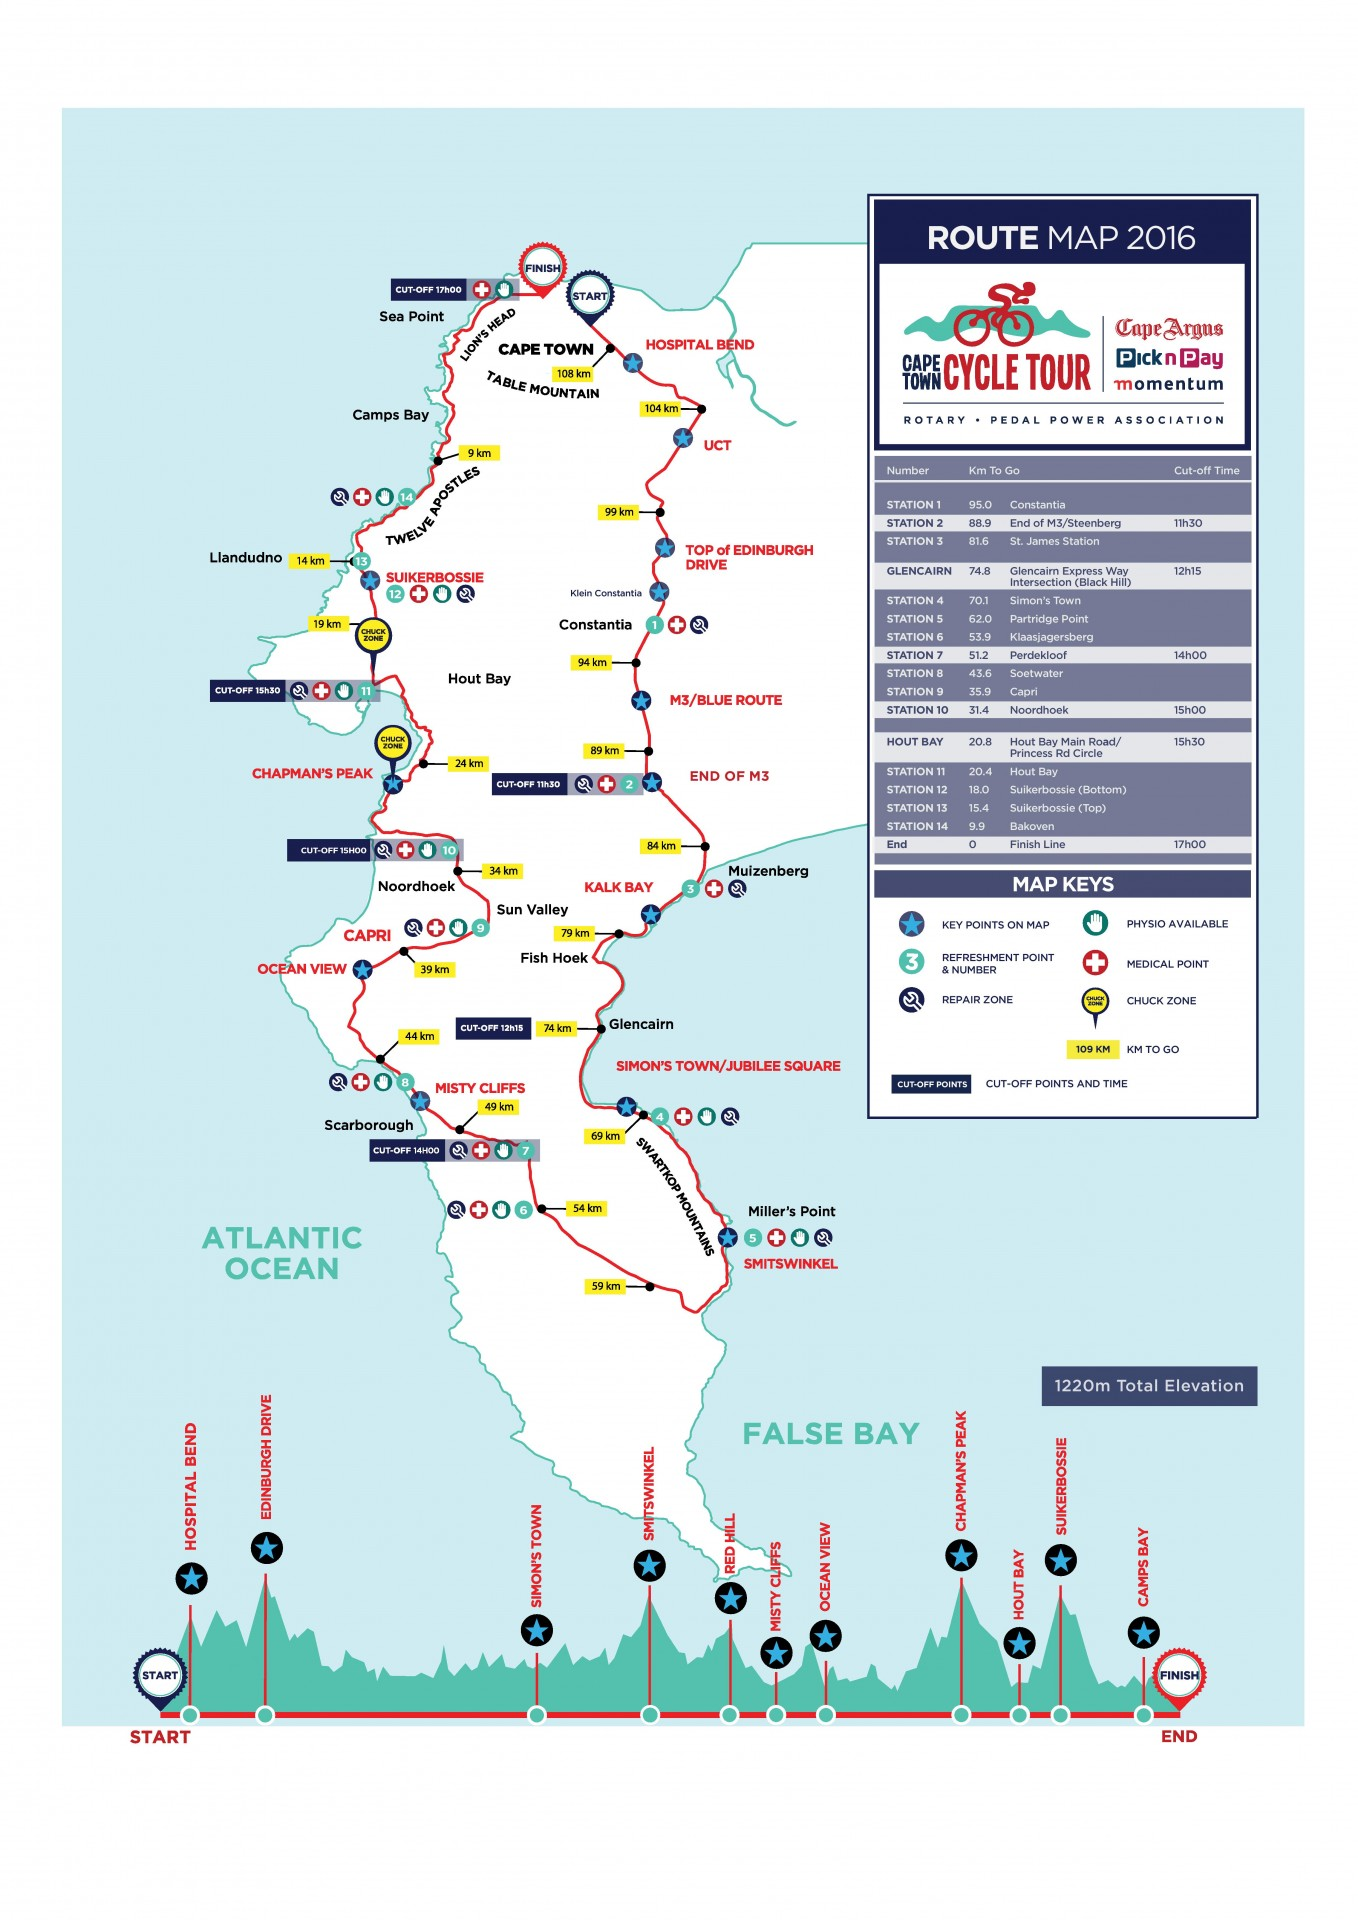 cycle-tour-full-route-map-2016